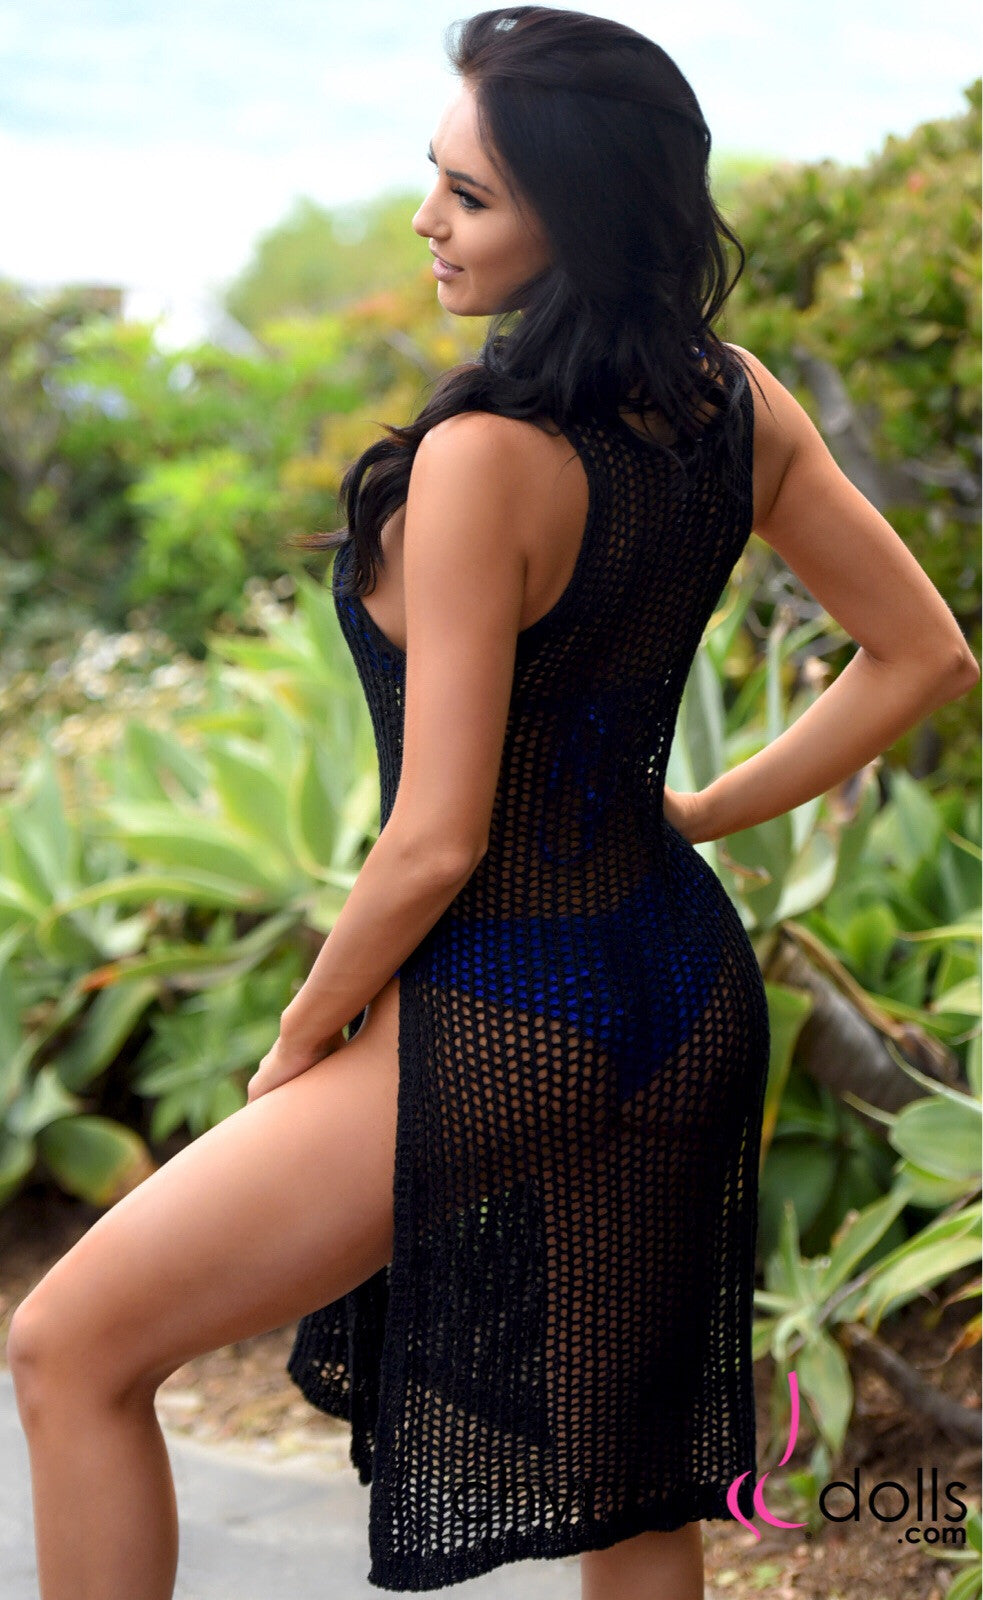 Melrose: Crochet Dress Coverup with Side Slits in Black - Chynna Dolls